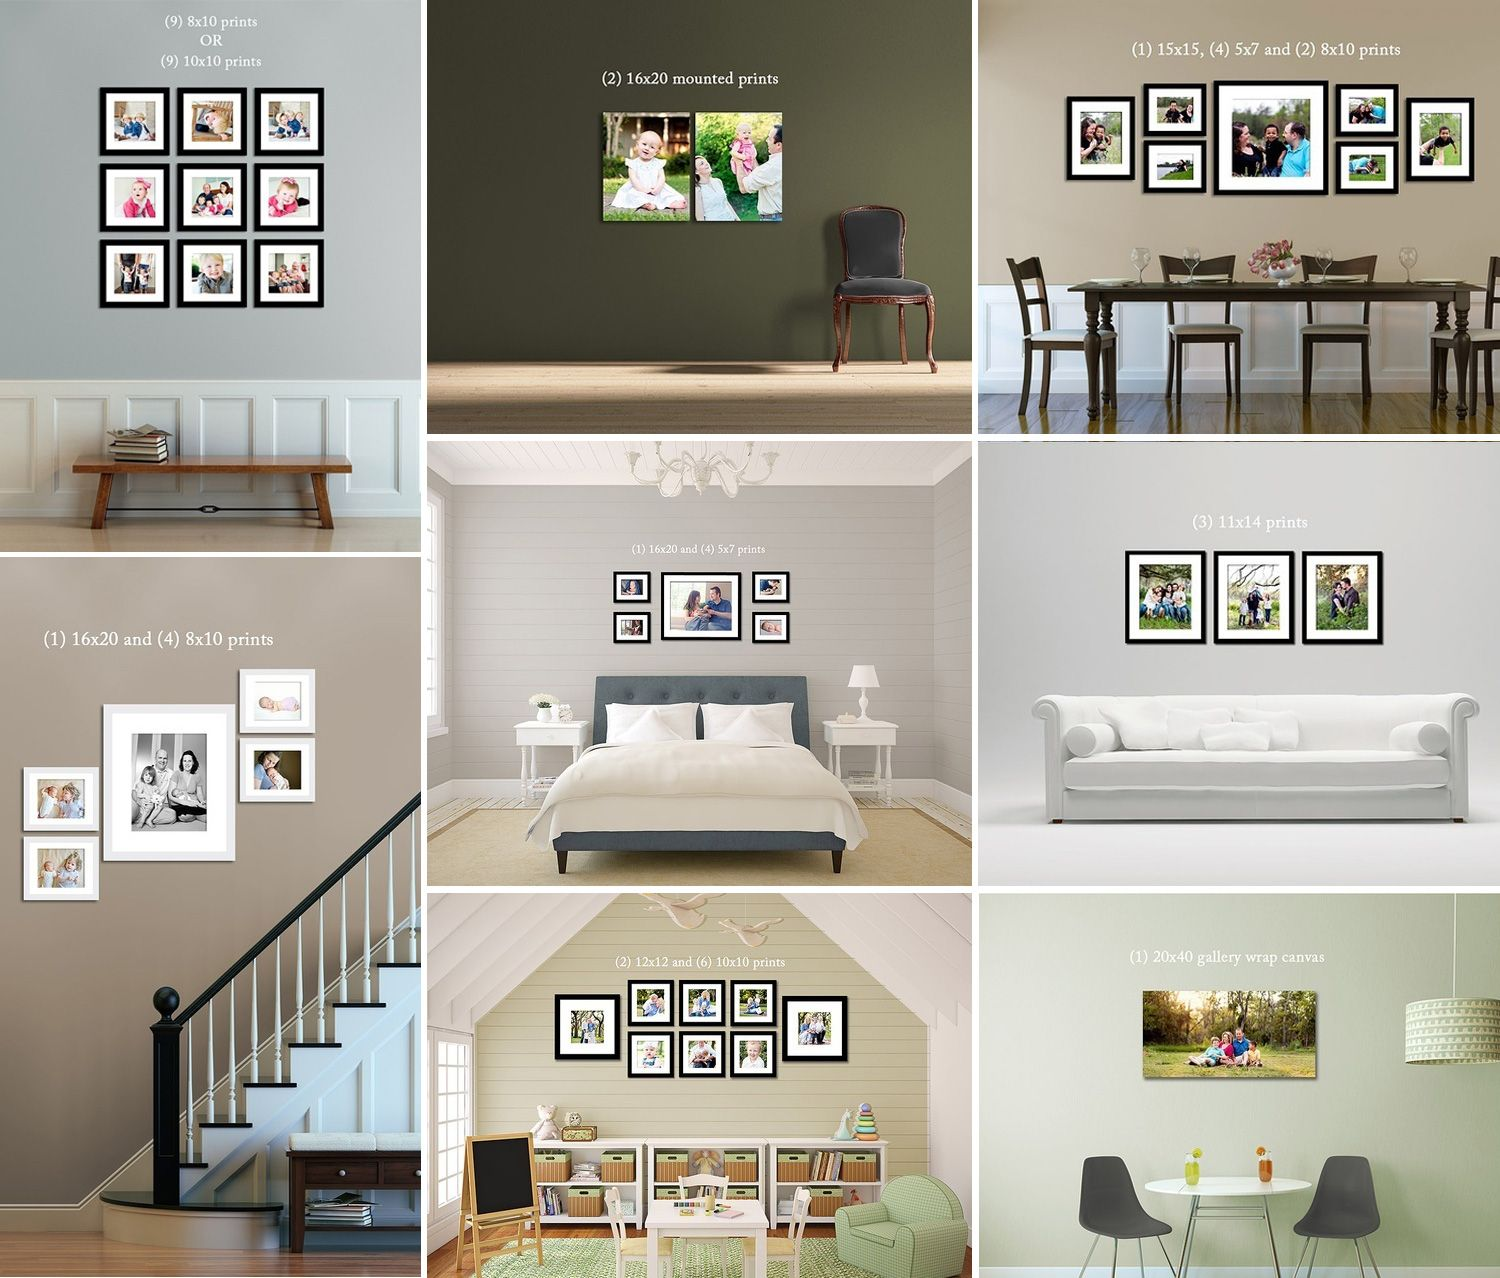 Frames Frames On Wall Diy Home Decor Bedroom Home